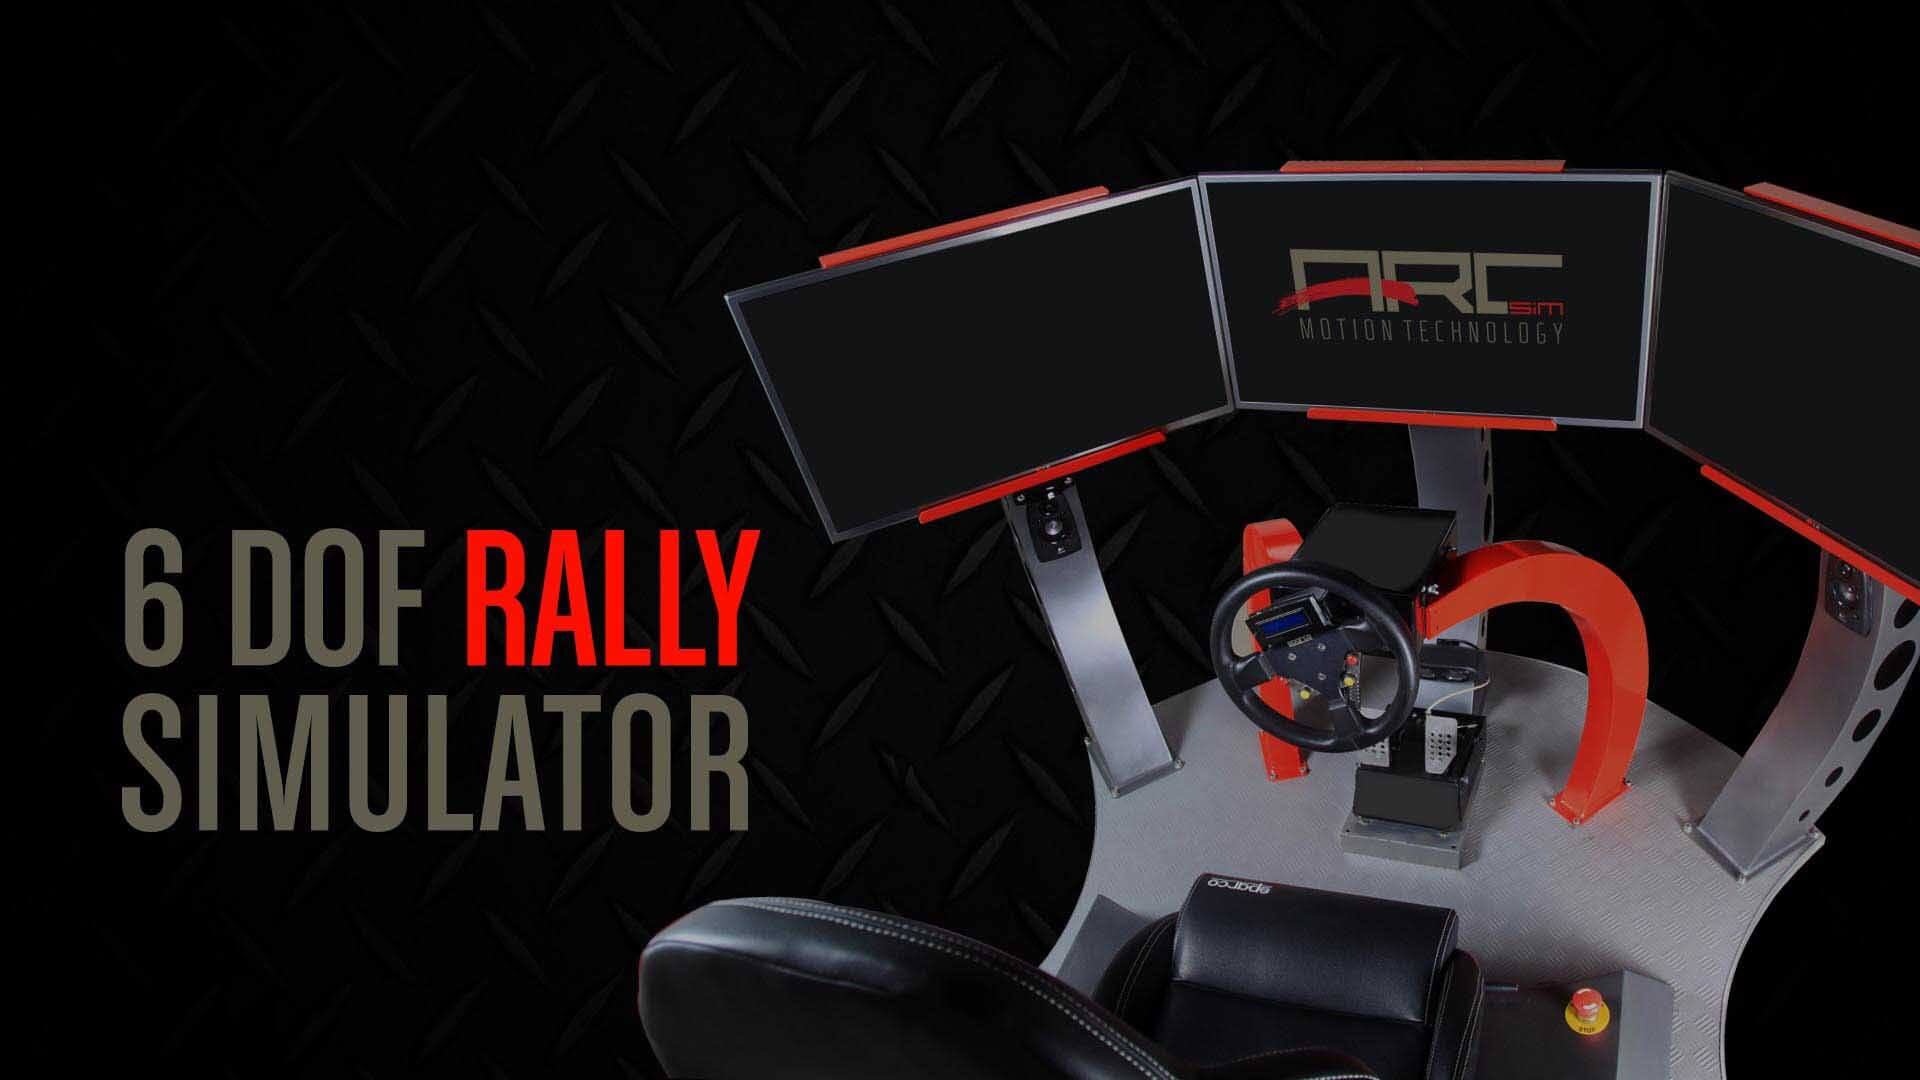 6 Dof Rally Simulator